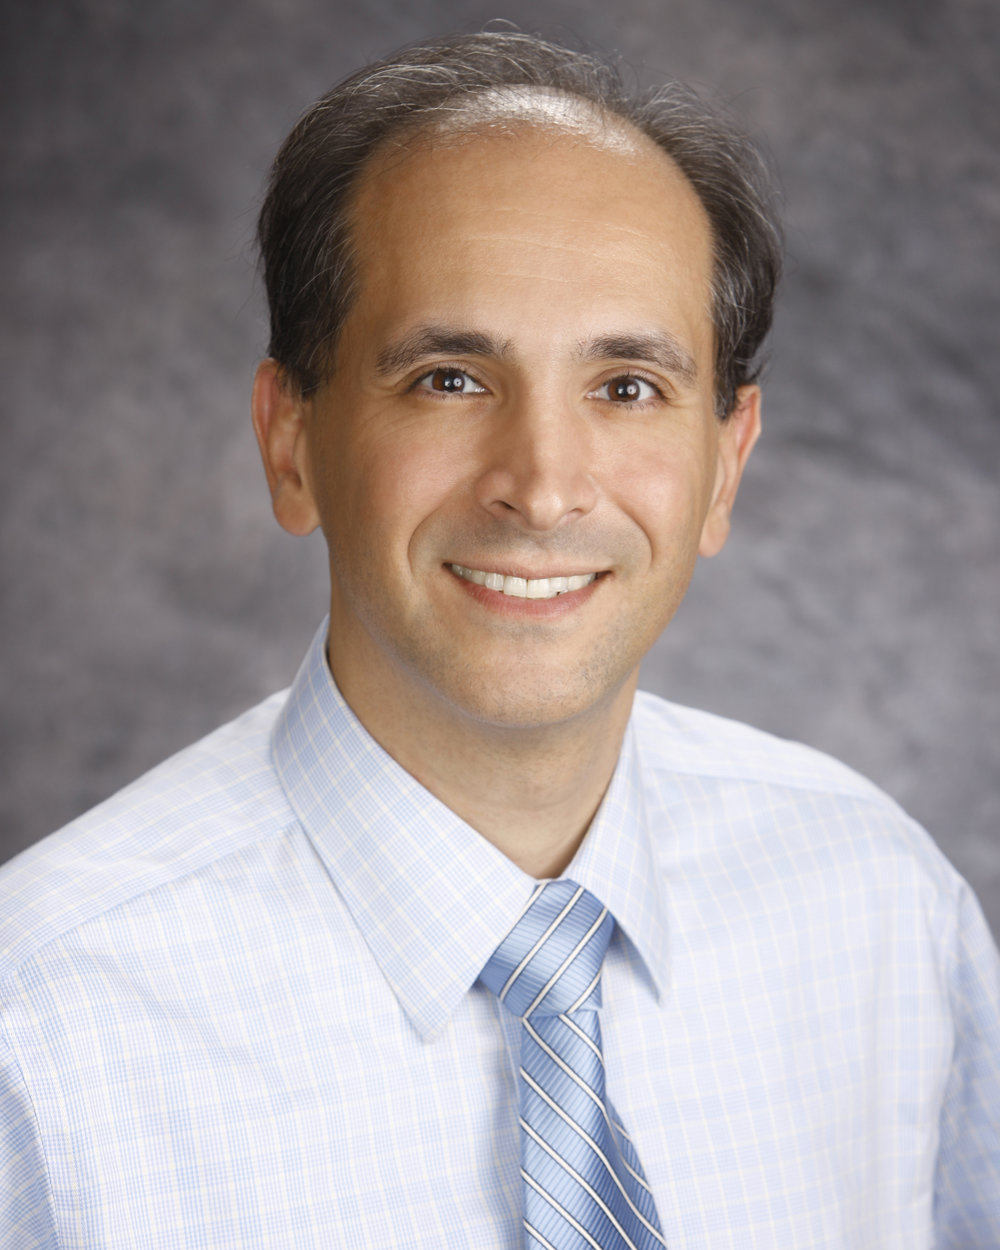 Arash Mohebati, MD, FACS